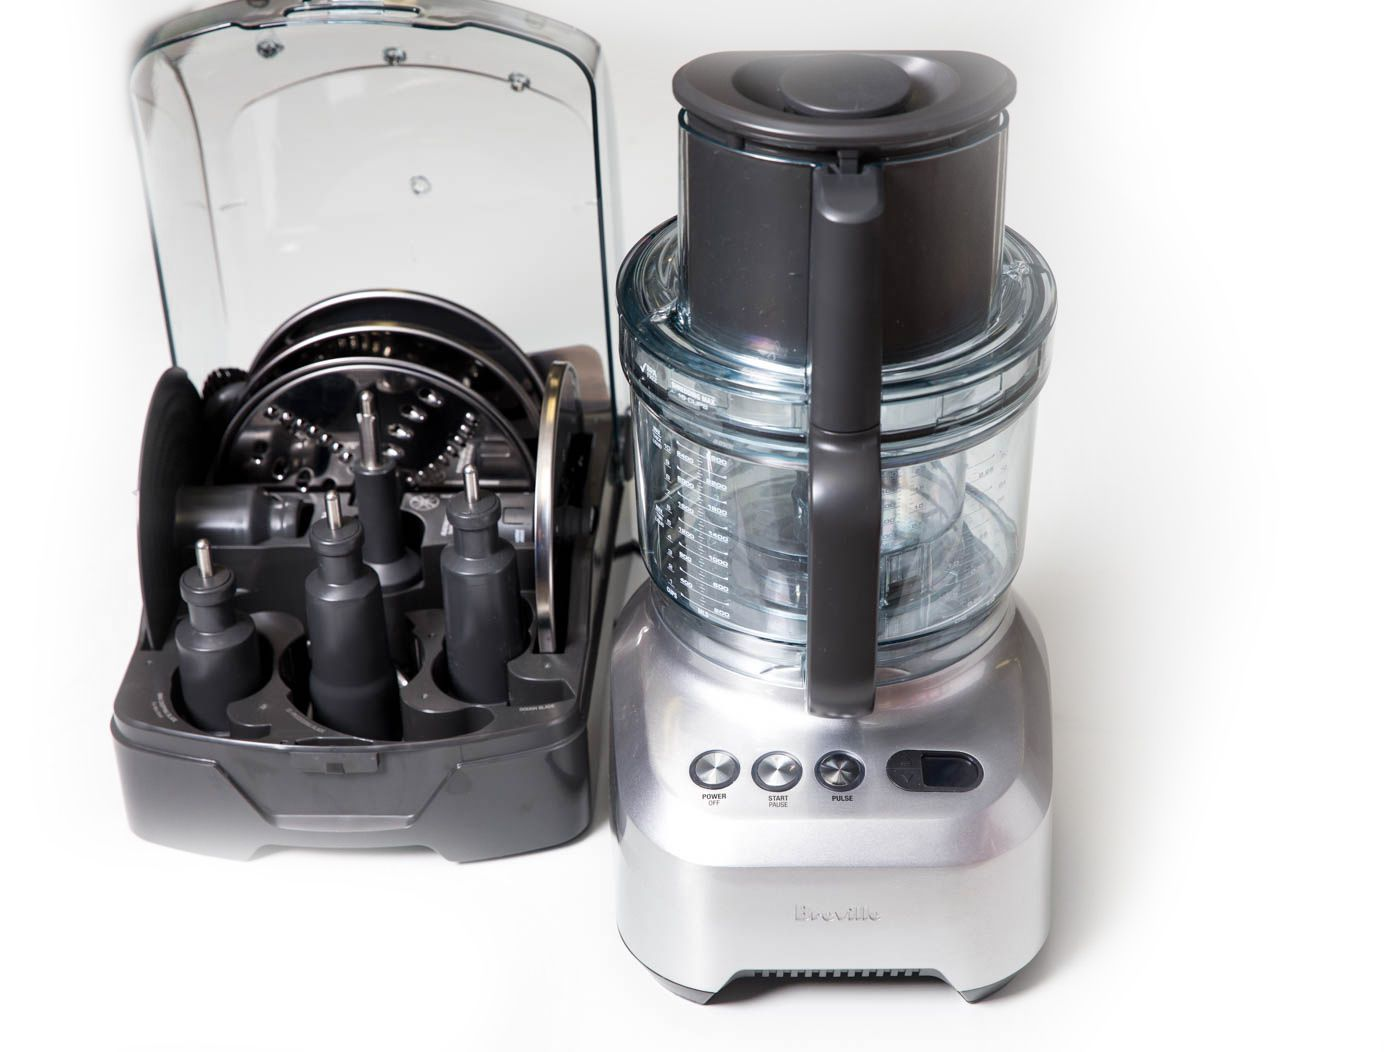 Breville 16-cup food processor with accessories